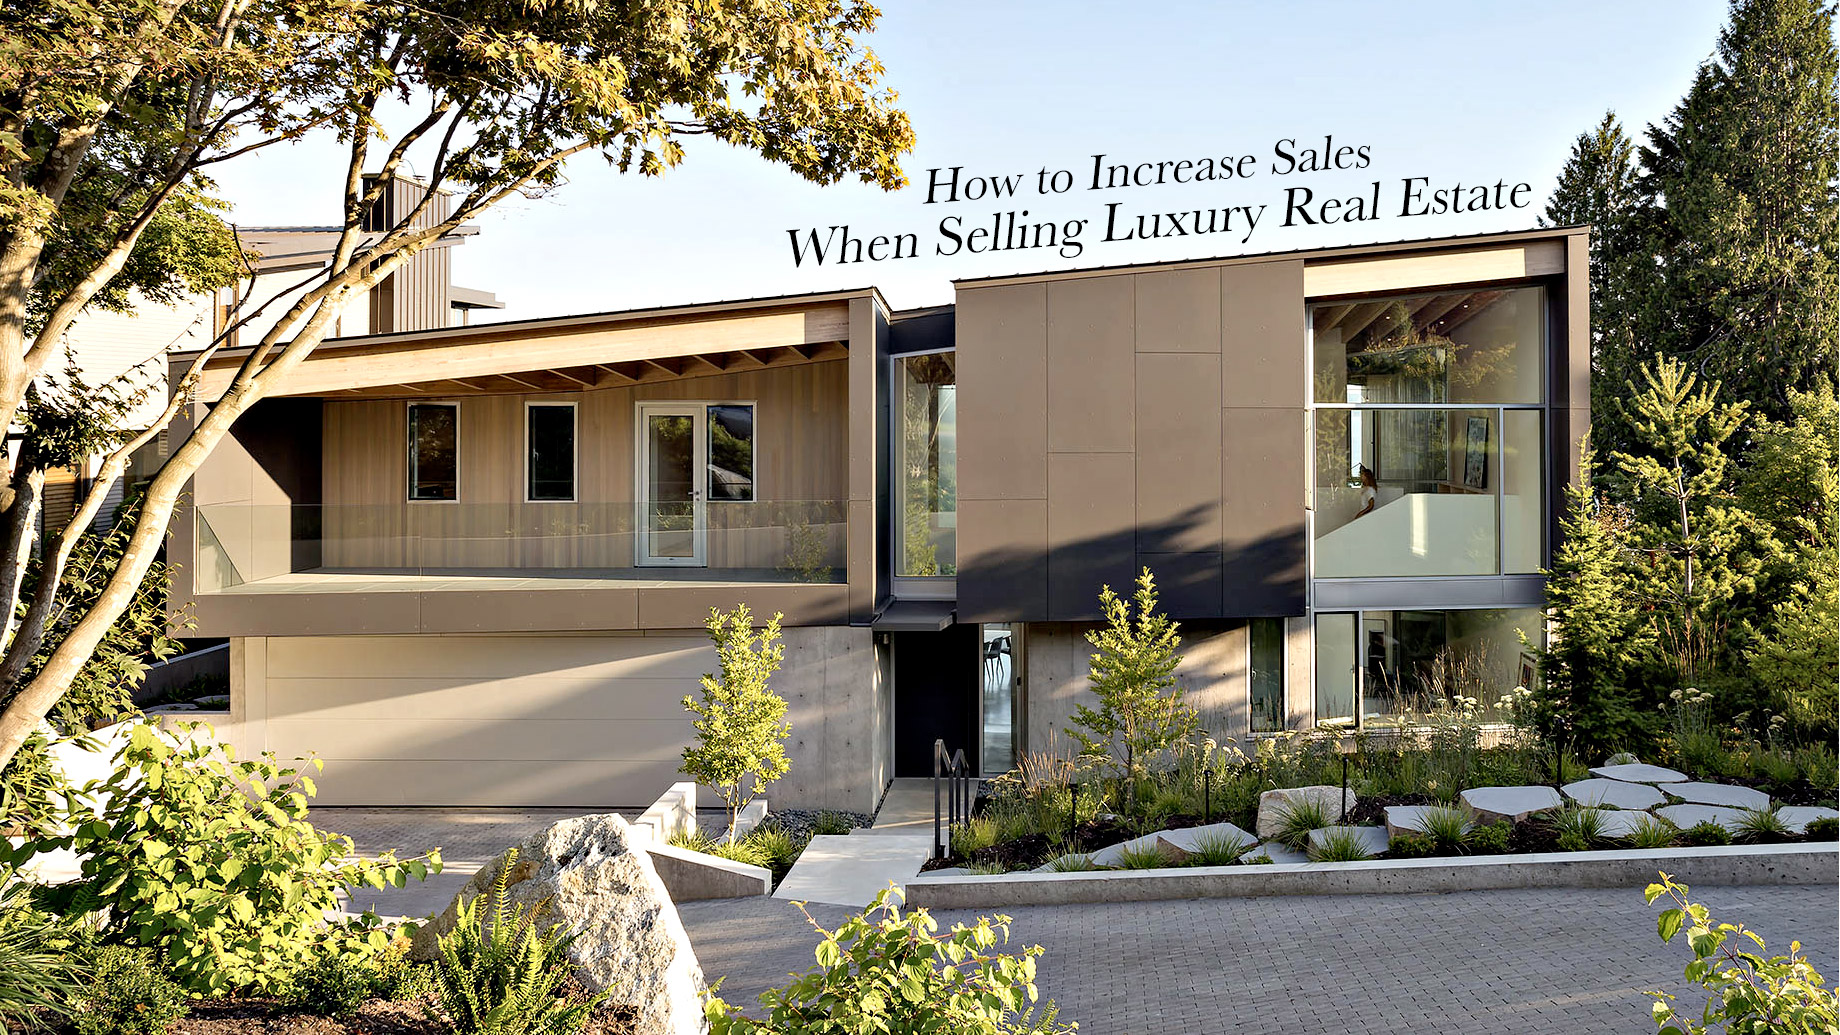 How to Increase Sales When Selling Luxury Real Estate